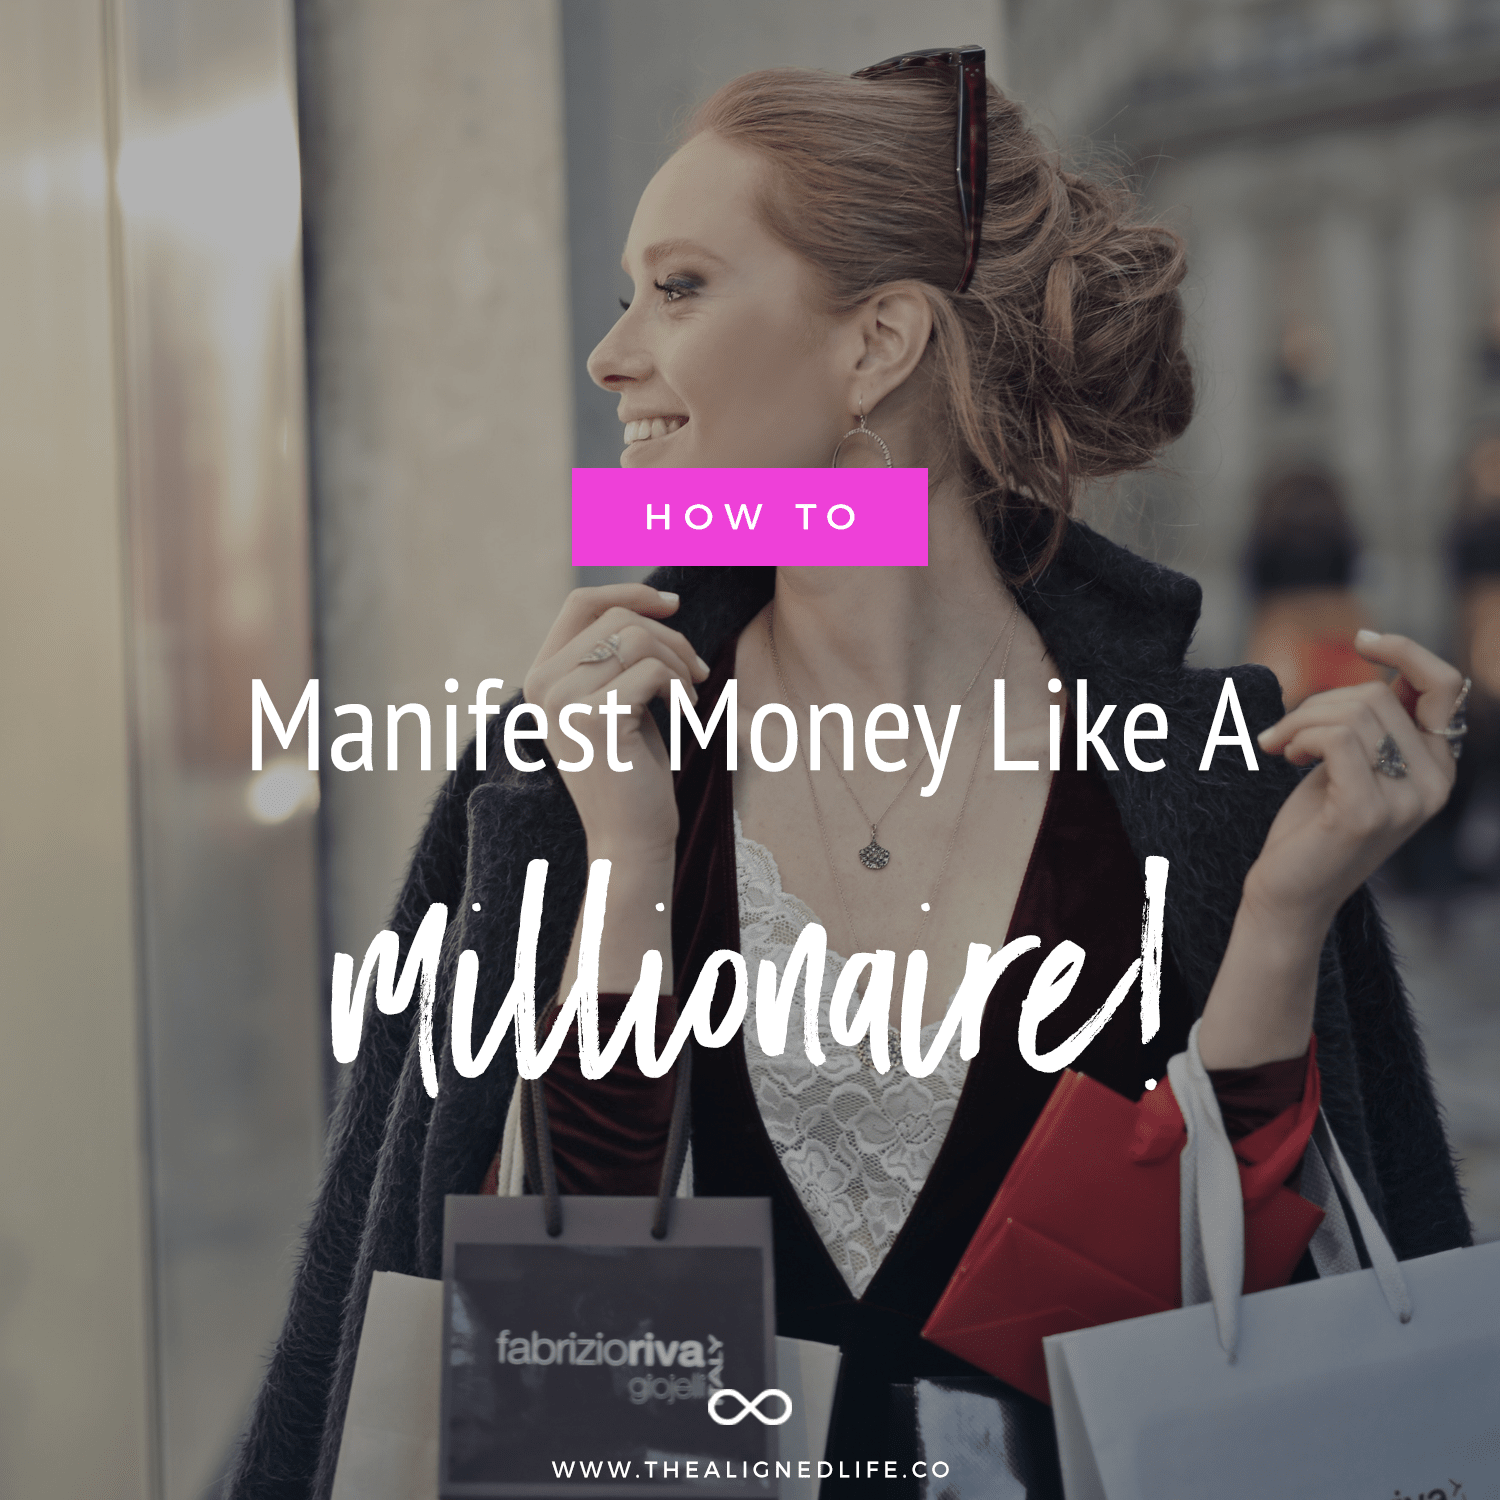 How To Manifest Money Like A Millionaire